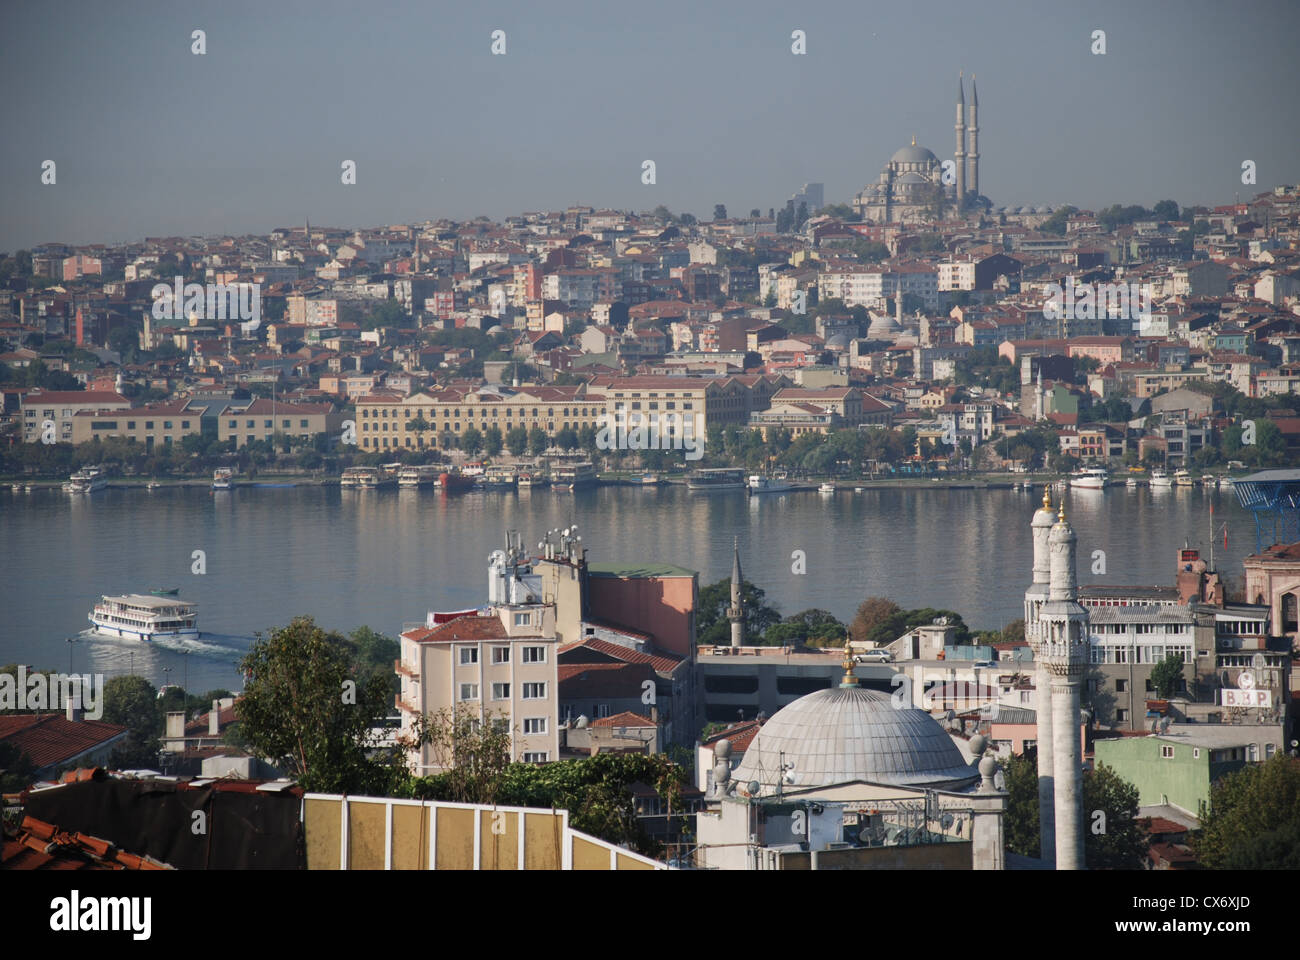 A view of the Golden Horn in Istanbul taken from Tepebasi. Picture by Adam Alexander/Alamy Stock Photo